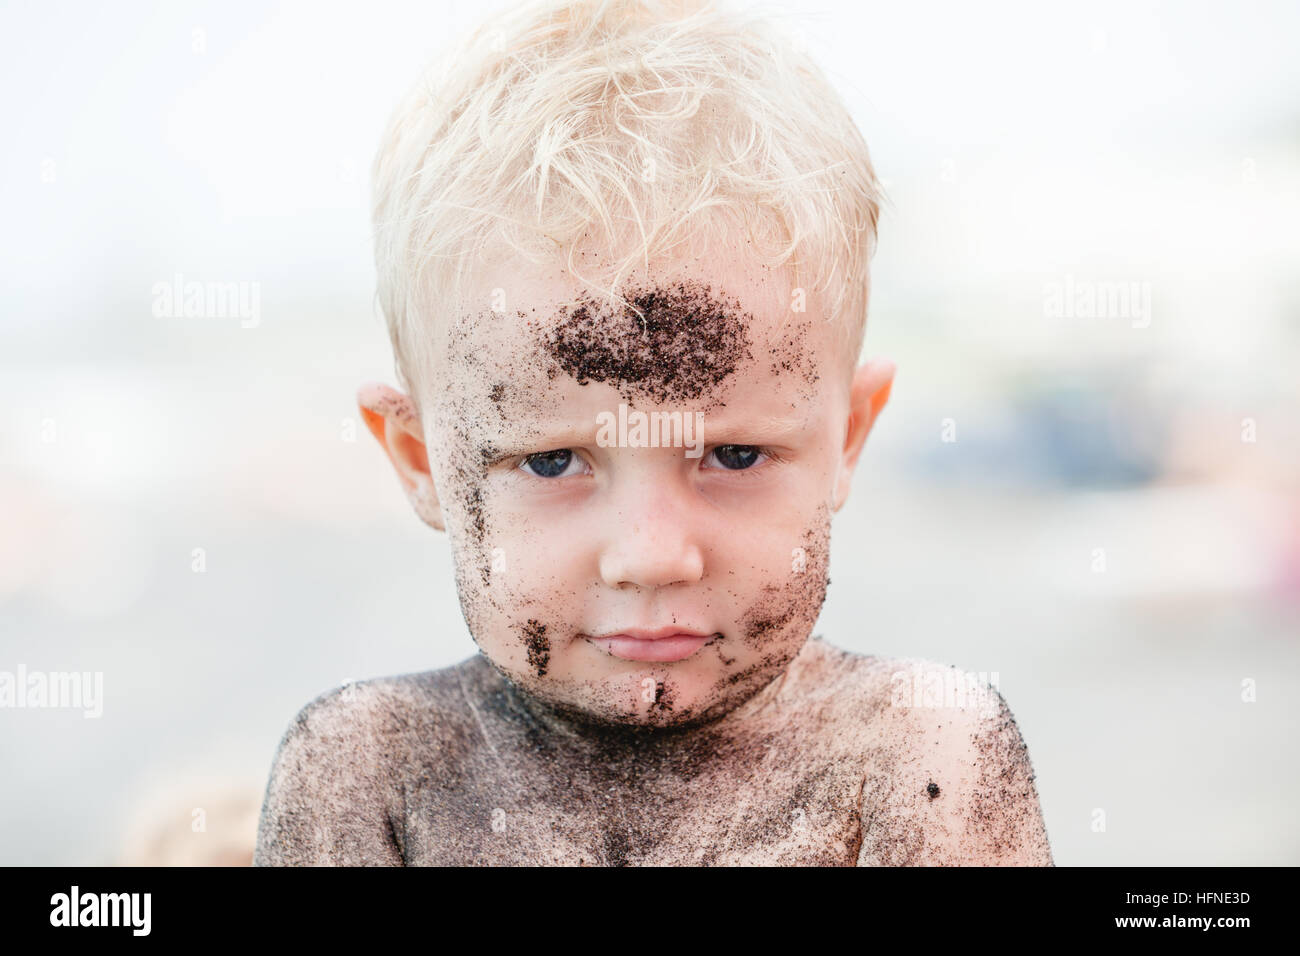 Funny happy baby boy on beach with dirty face covered with black sand. Family travel, healthy children lifestyle - Stock Image